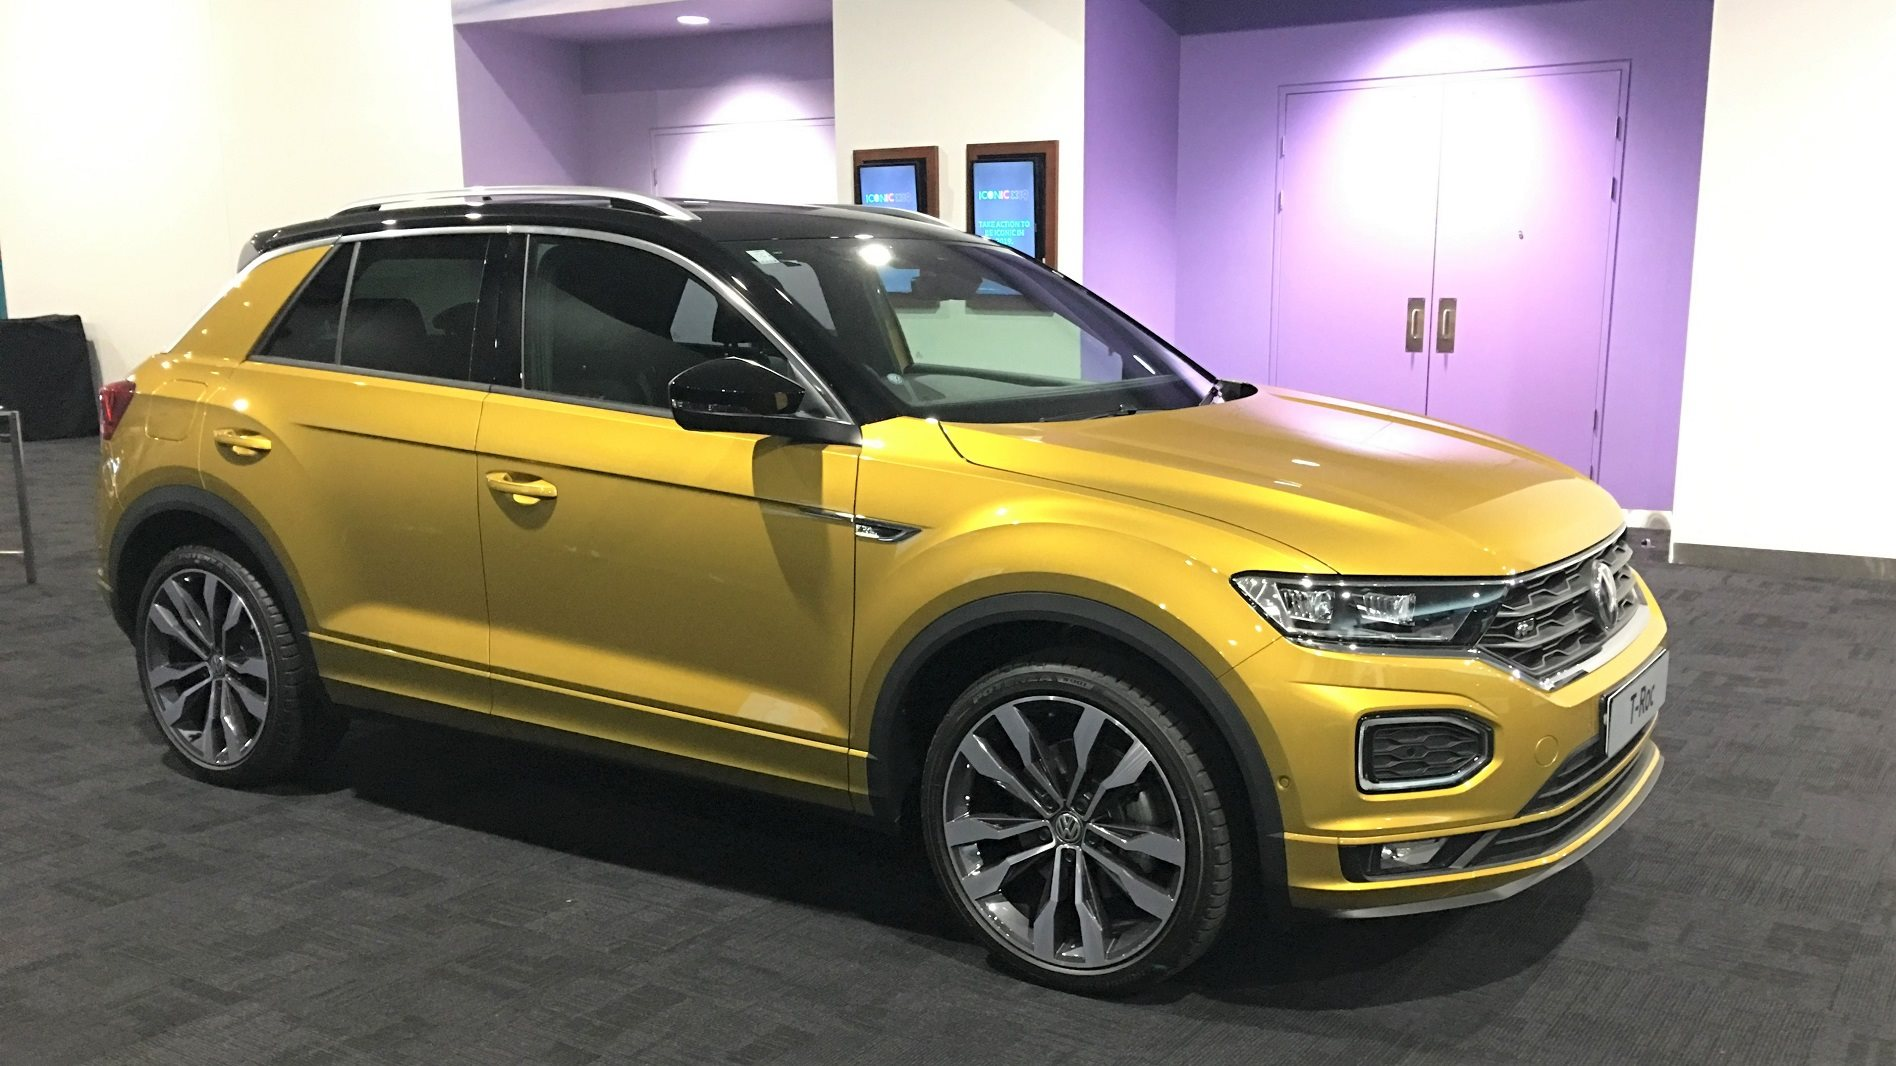 Volkswagen T-Roc and T-Cross shown off in Australia